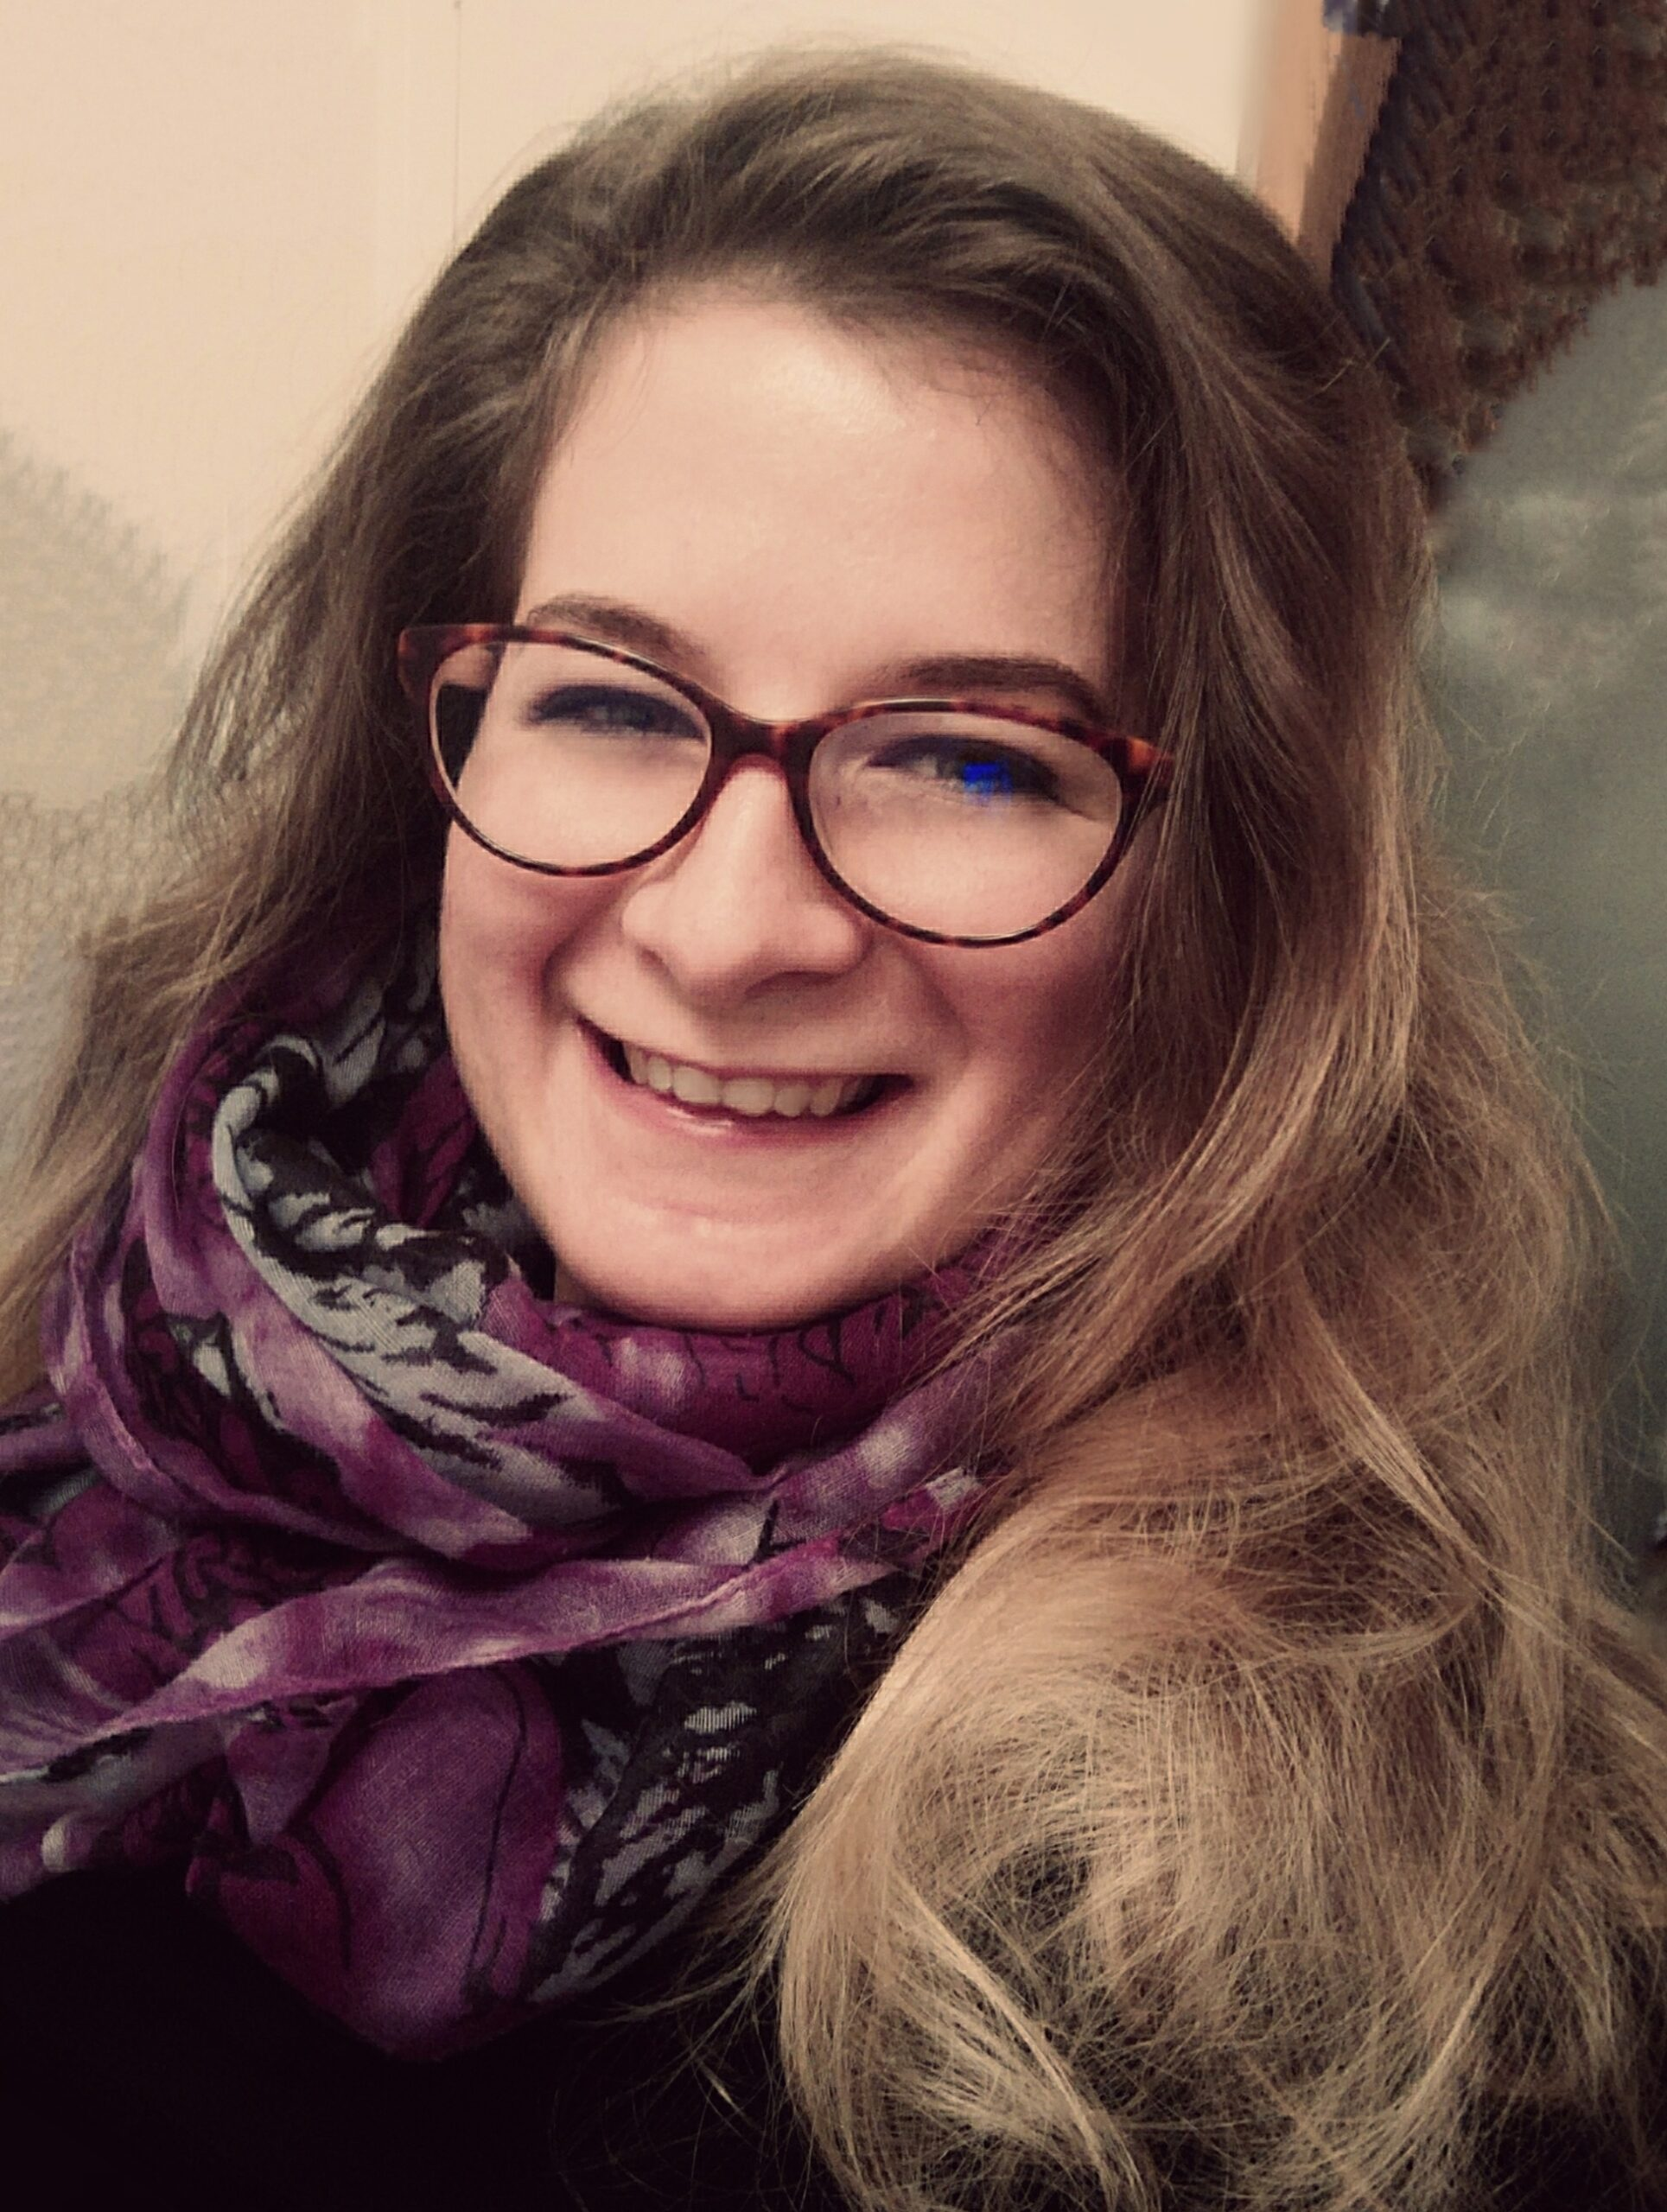 A photo of Zsuzsanna who smiles at the camera, she wears glasses, a scarf and hand long light brown hair